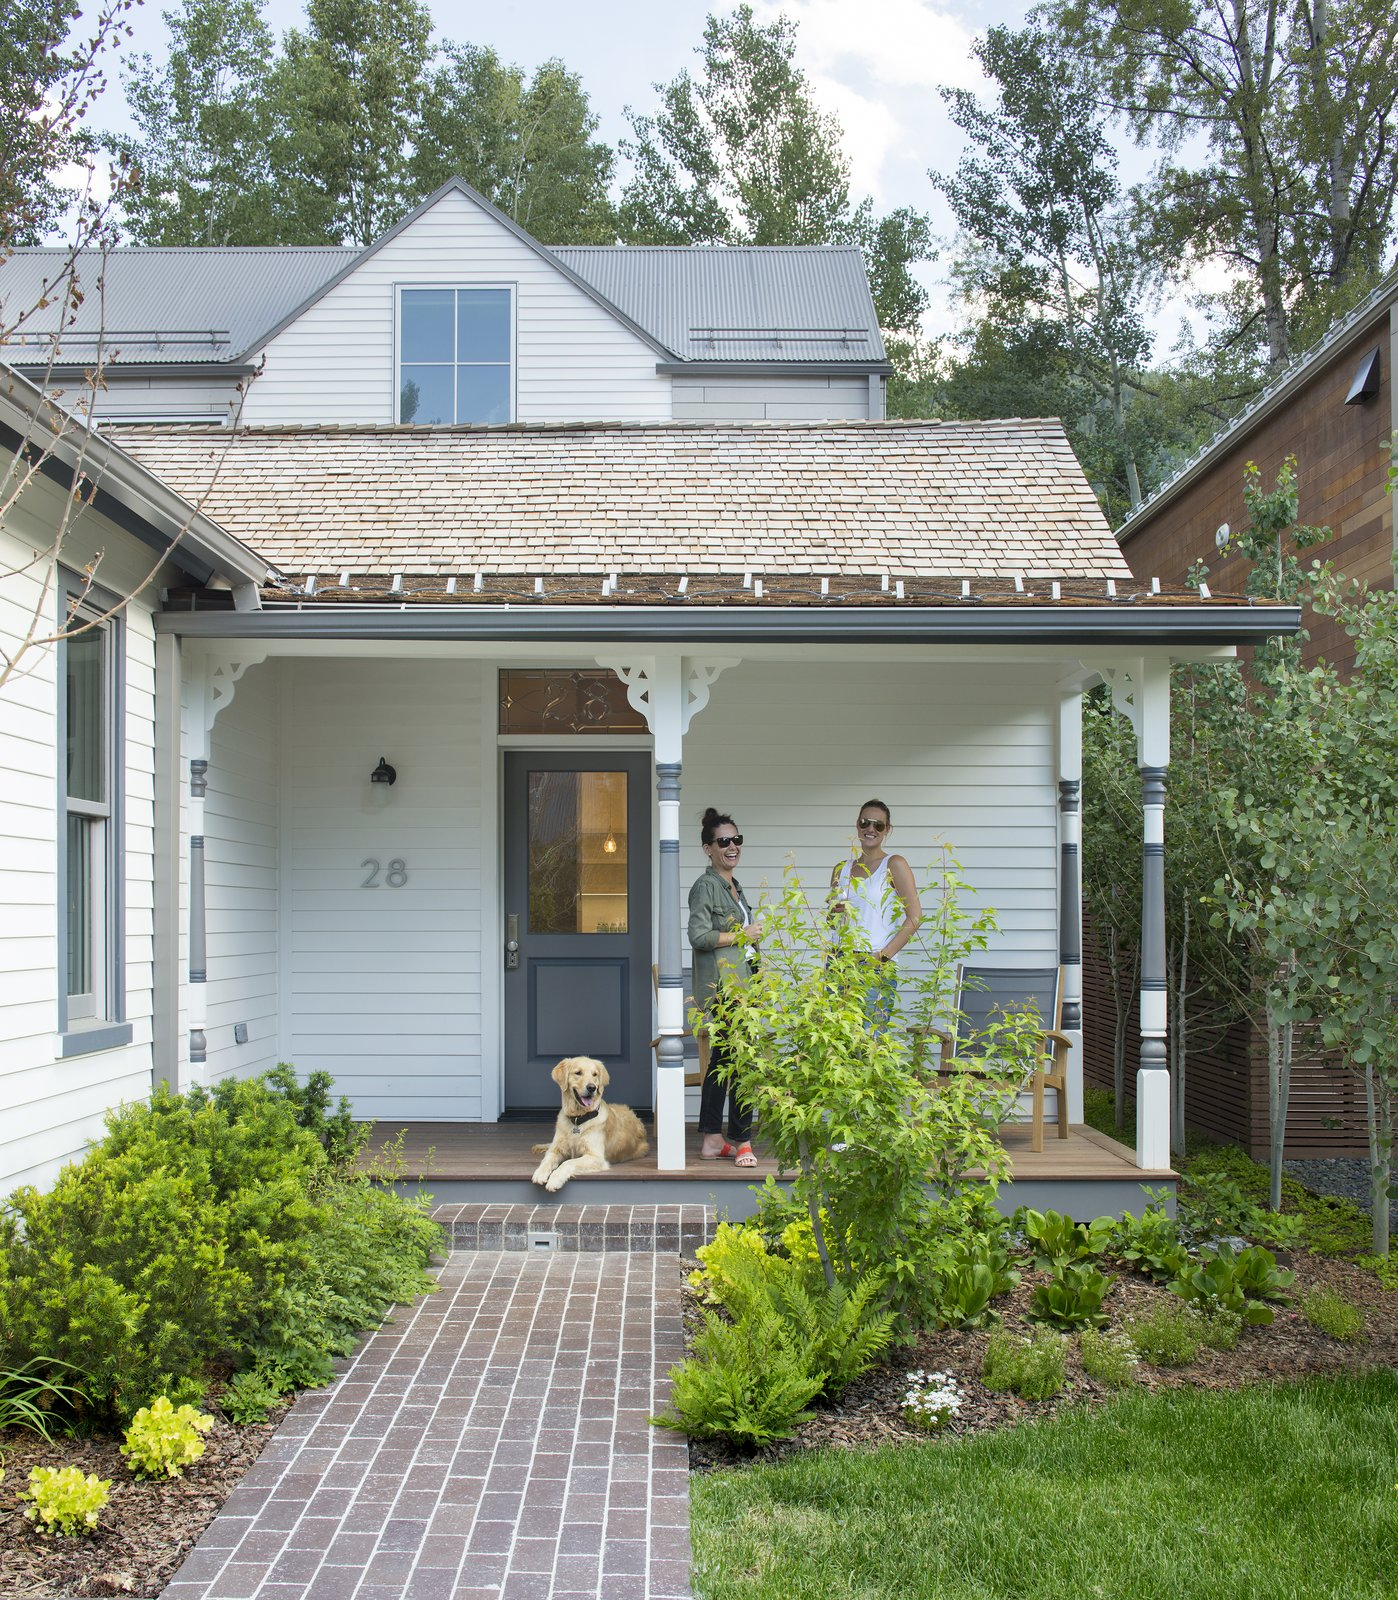 Exterior Victorian on Smuggler   Smuggler Grove by Forum Phi Architecture   Interiors   Planning